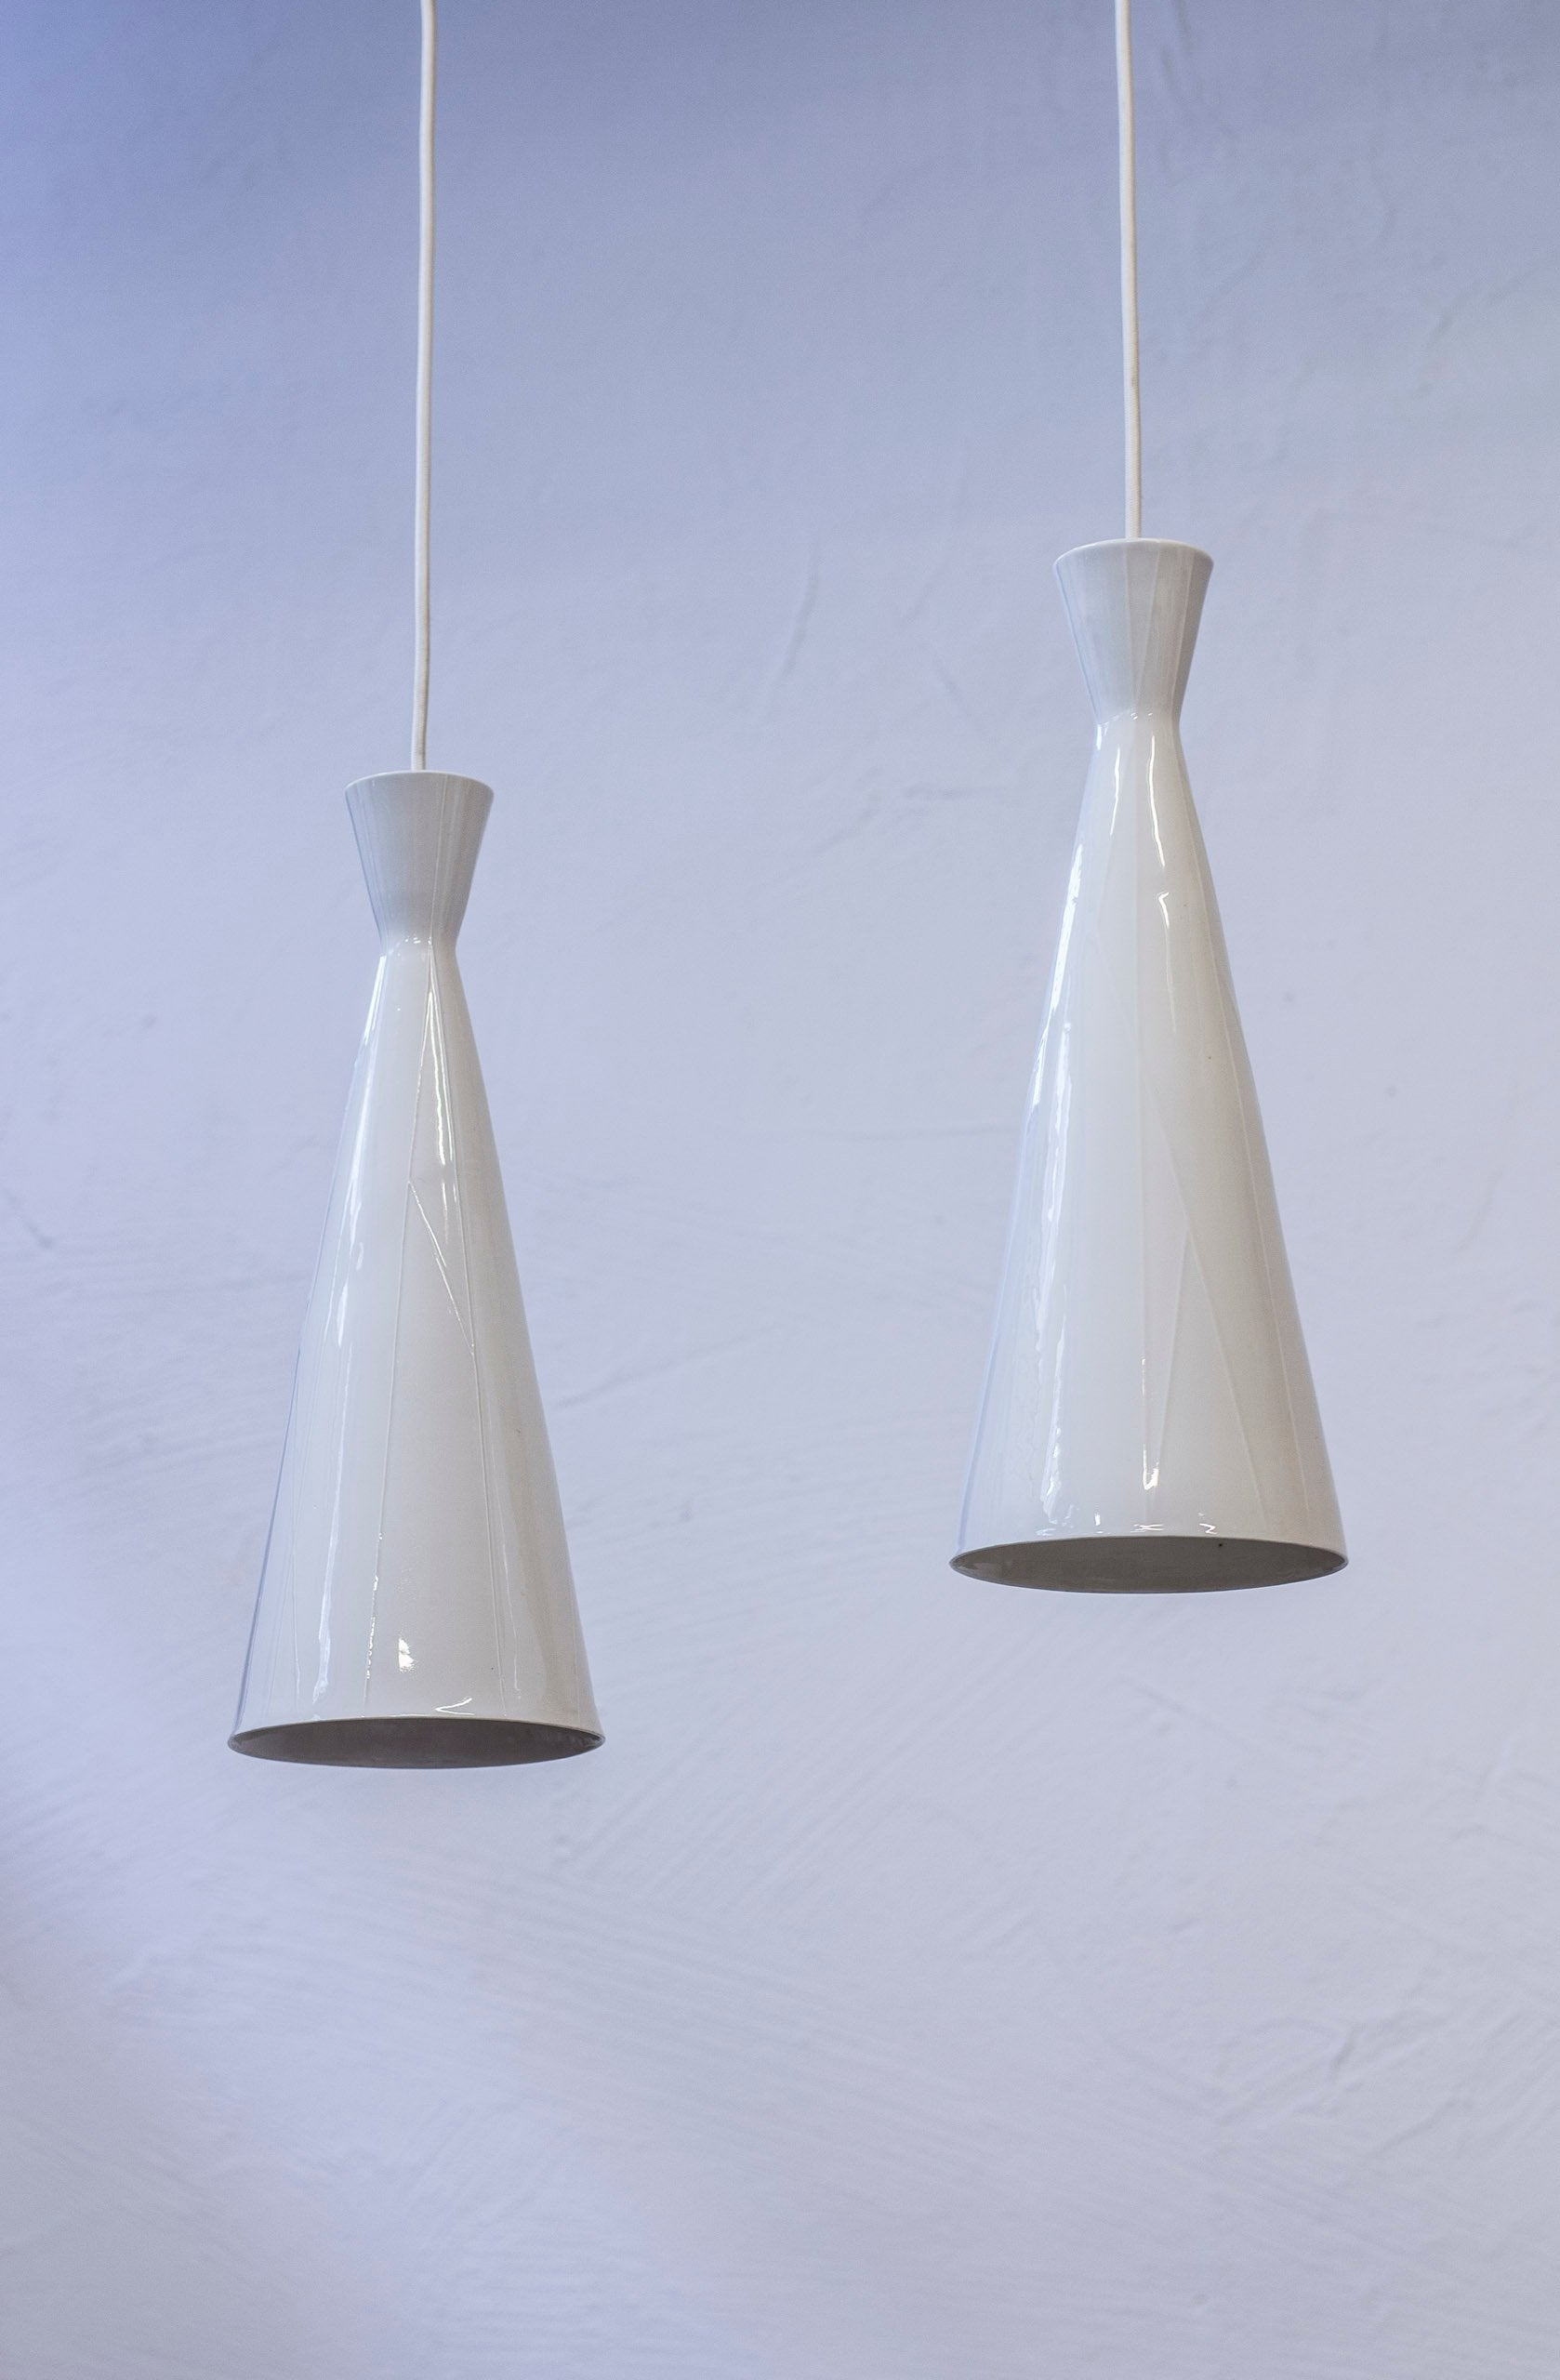 Pair of ceiling lights by Carl Harry Stålhane